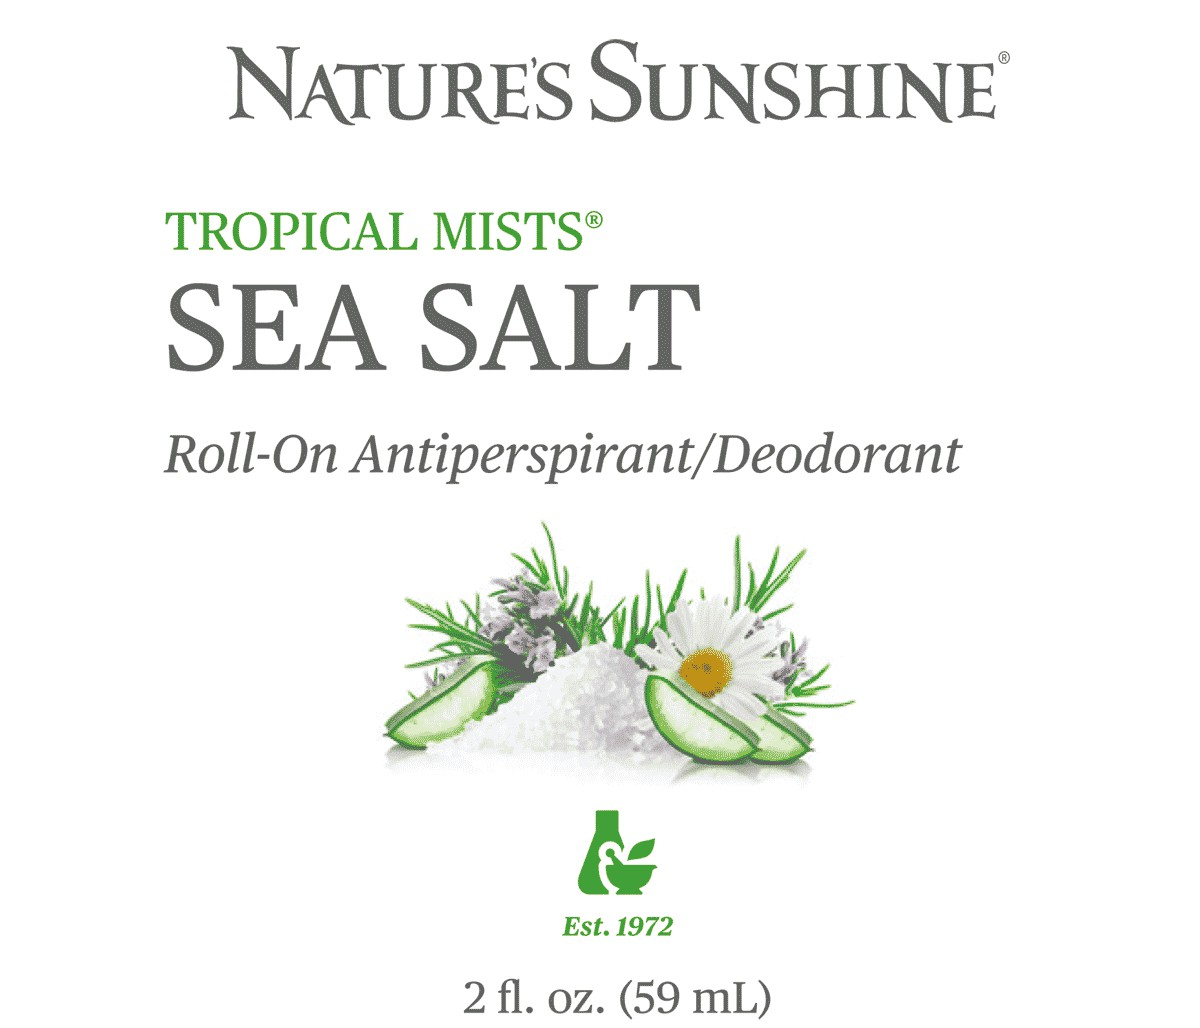 Sea Salt Roll-On Antiperspirant/Deodorant (в новой упаковке!)